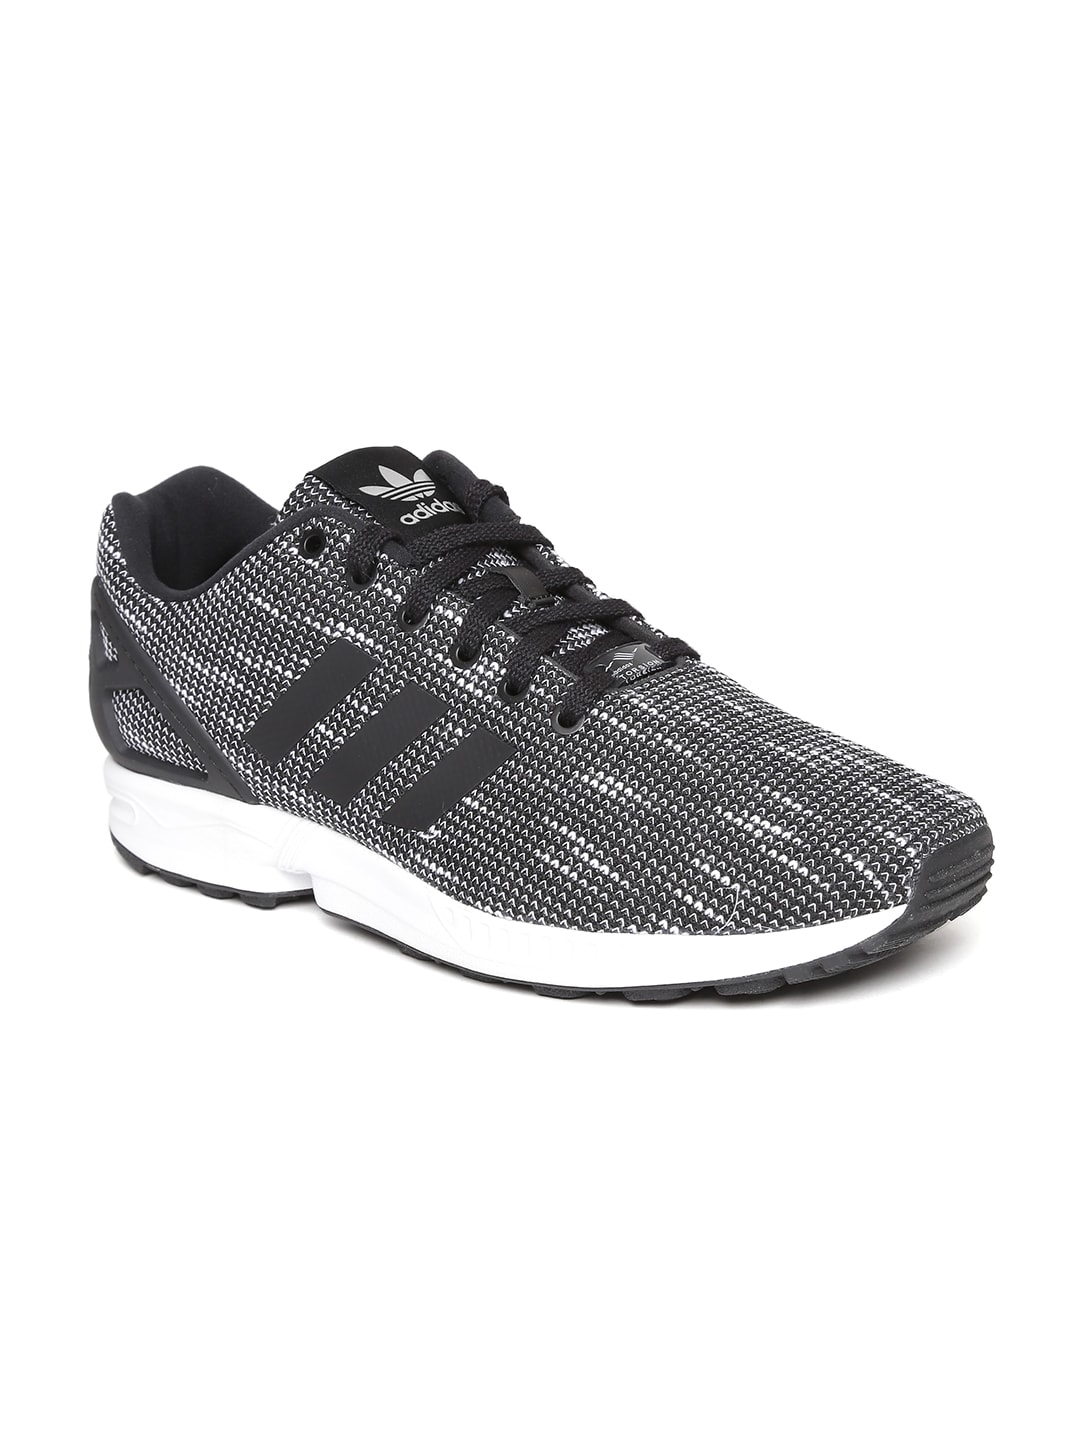 promo code d3dac 26ed8 ... discount code for adidas zx flux buy adidas zx flux online in india  0f750 ae4e8